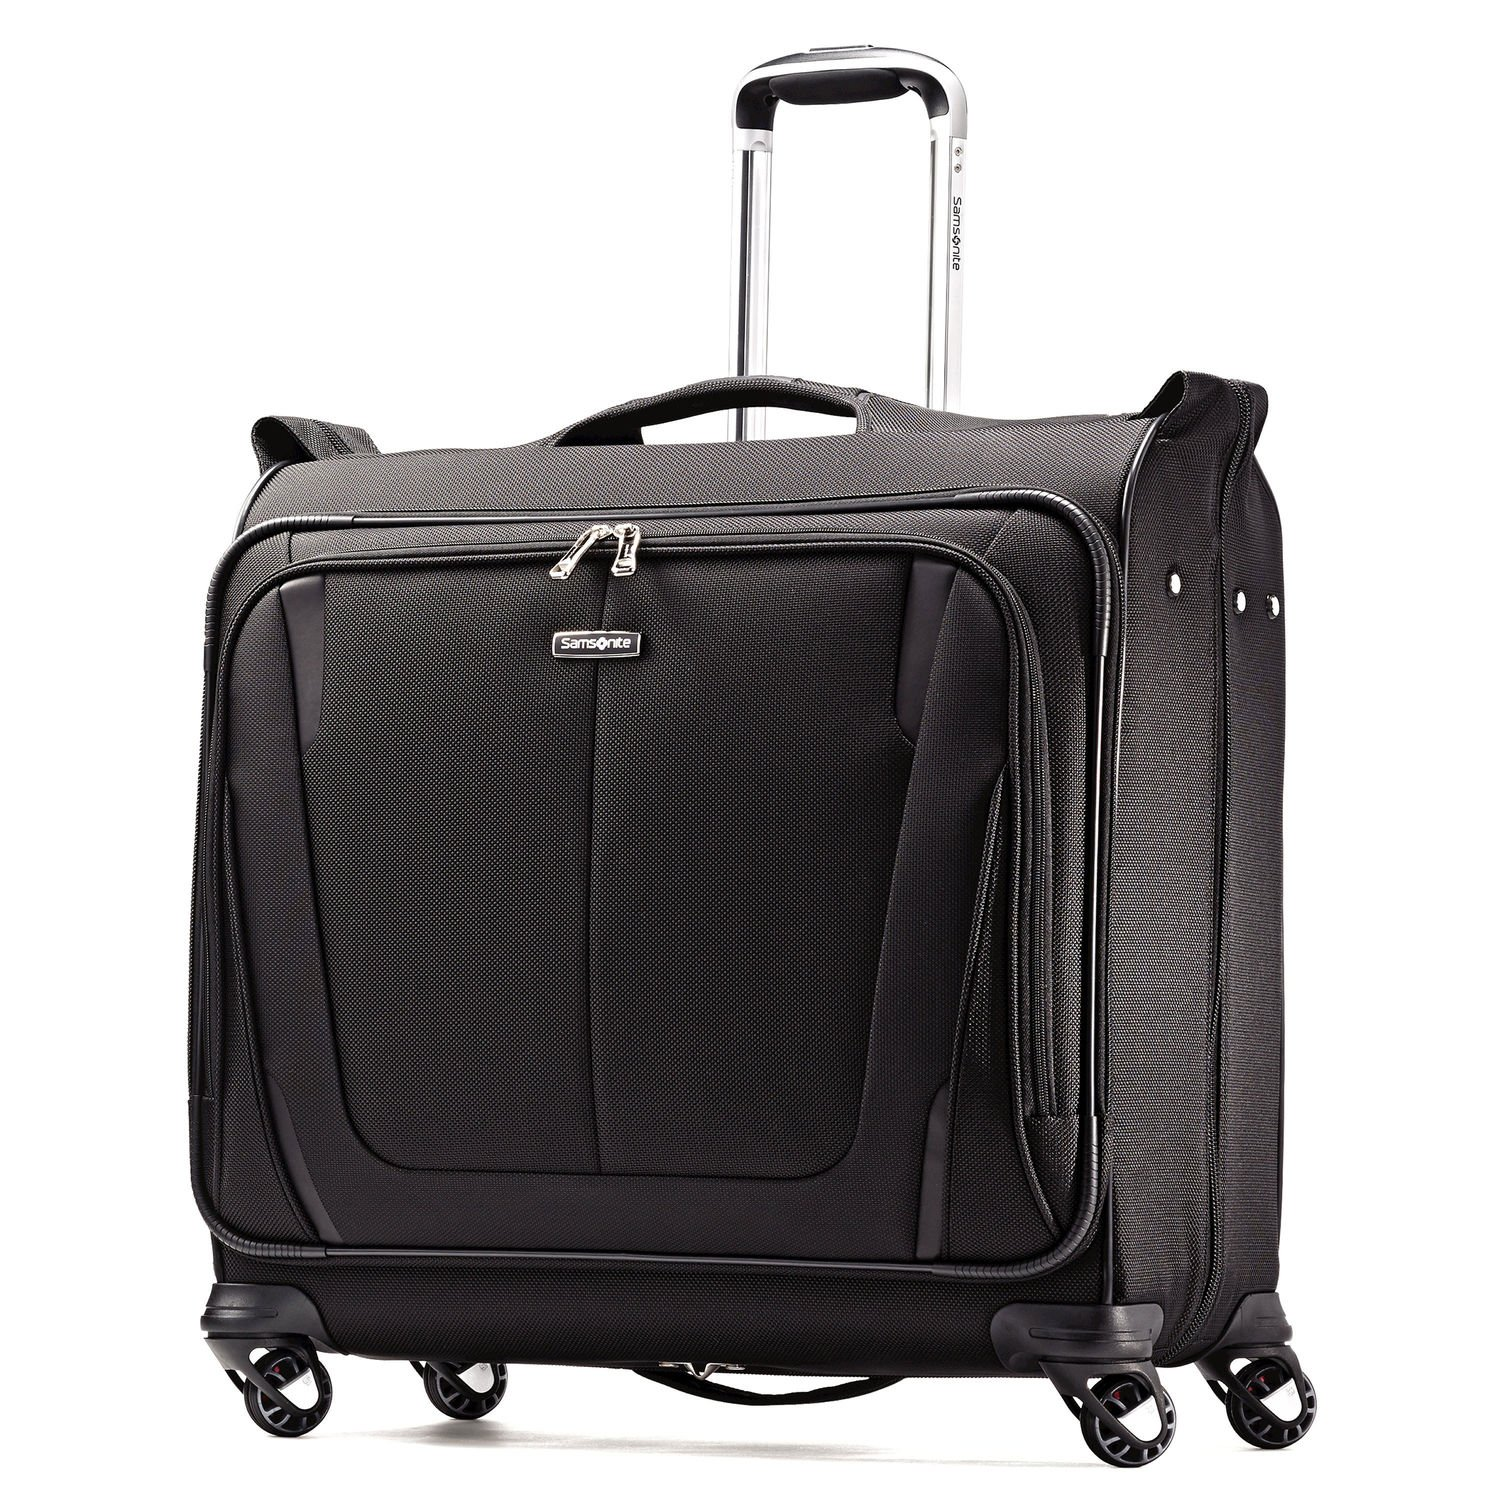 Samsonite Silhouette Sphere 2 Softside Deluxe Voyager Garment Bag, Black, 22 Inch